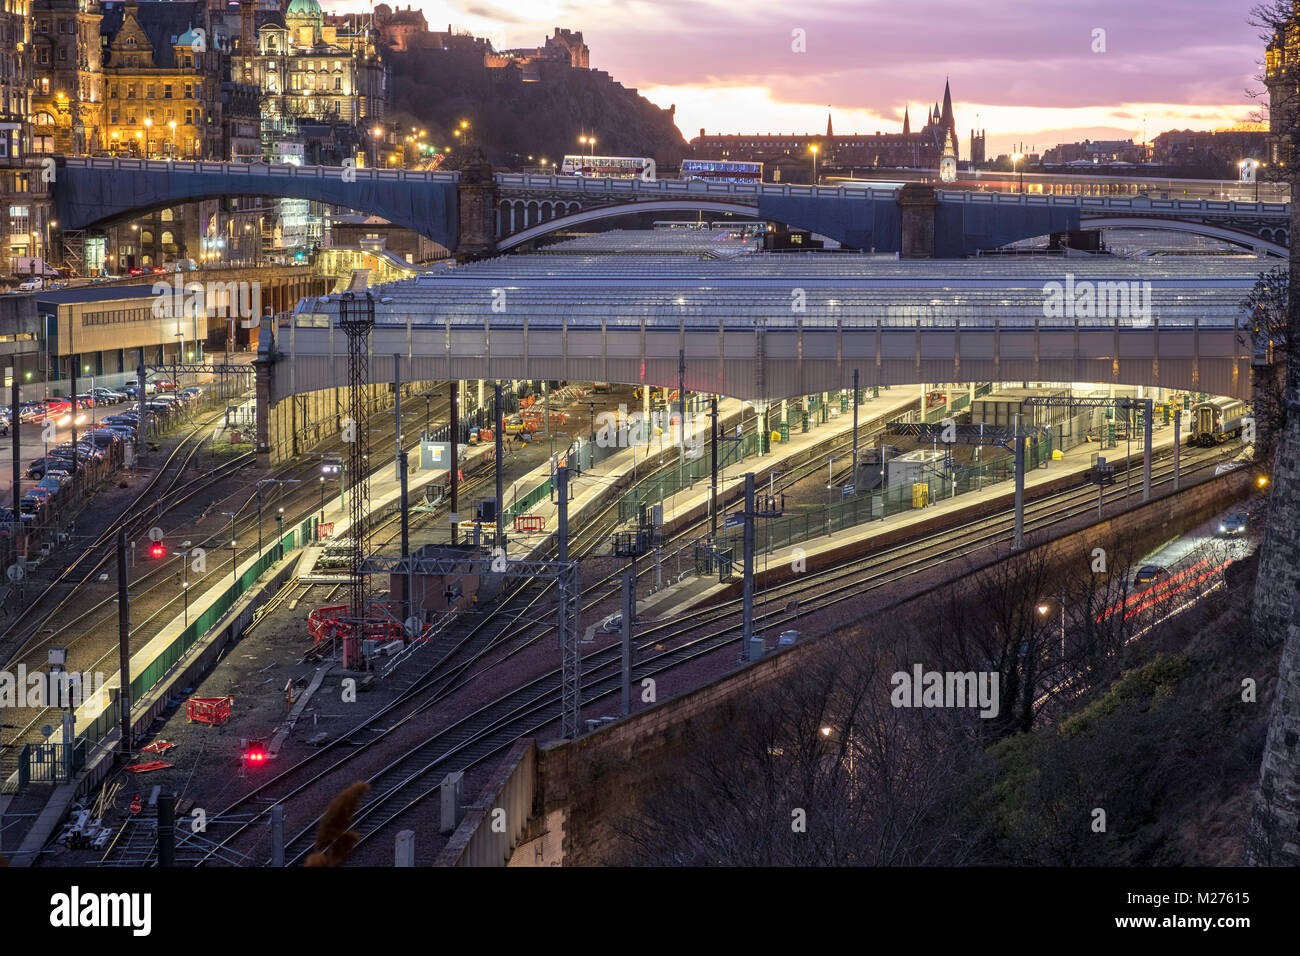 Night view of Waverley railway station in Edinburgh, Scotland, United Kingdom - Stock Image